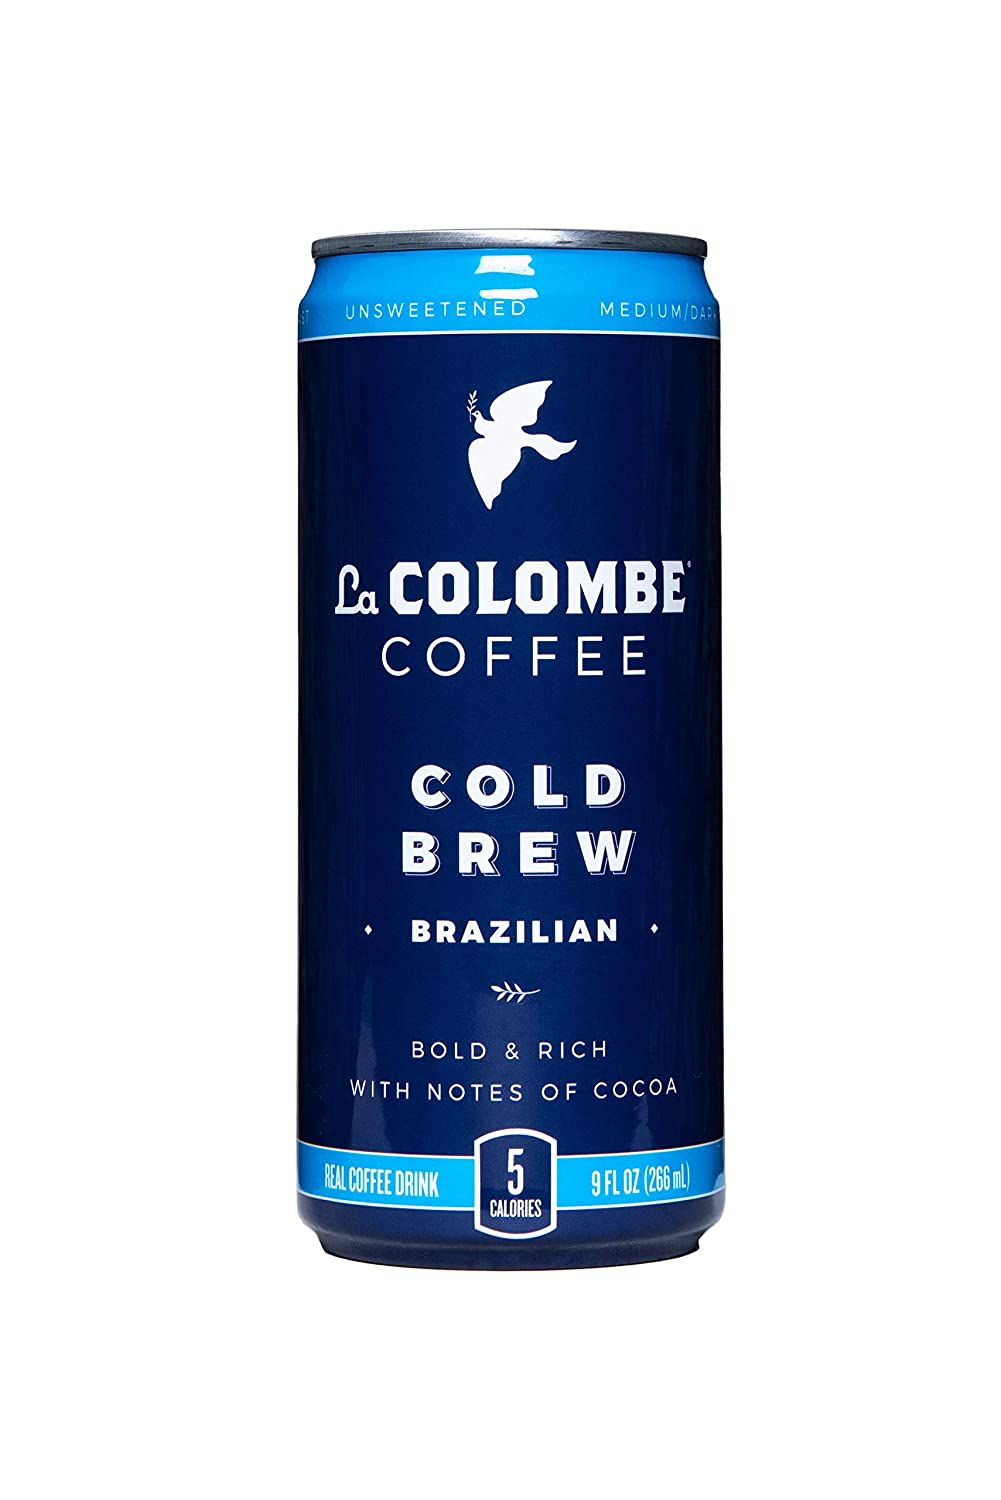 La Colombe Cold Brew Coffee - Brazilian - 9 Fluid Ounce, 16 Count - Medium Roast, Single-Origin- Made With Real Ingredients - No Sugar Added -Pure Black Coffee Grab And Go